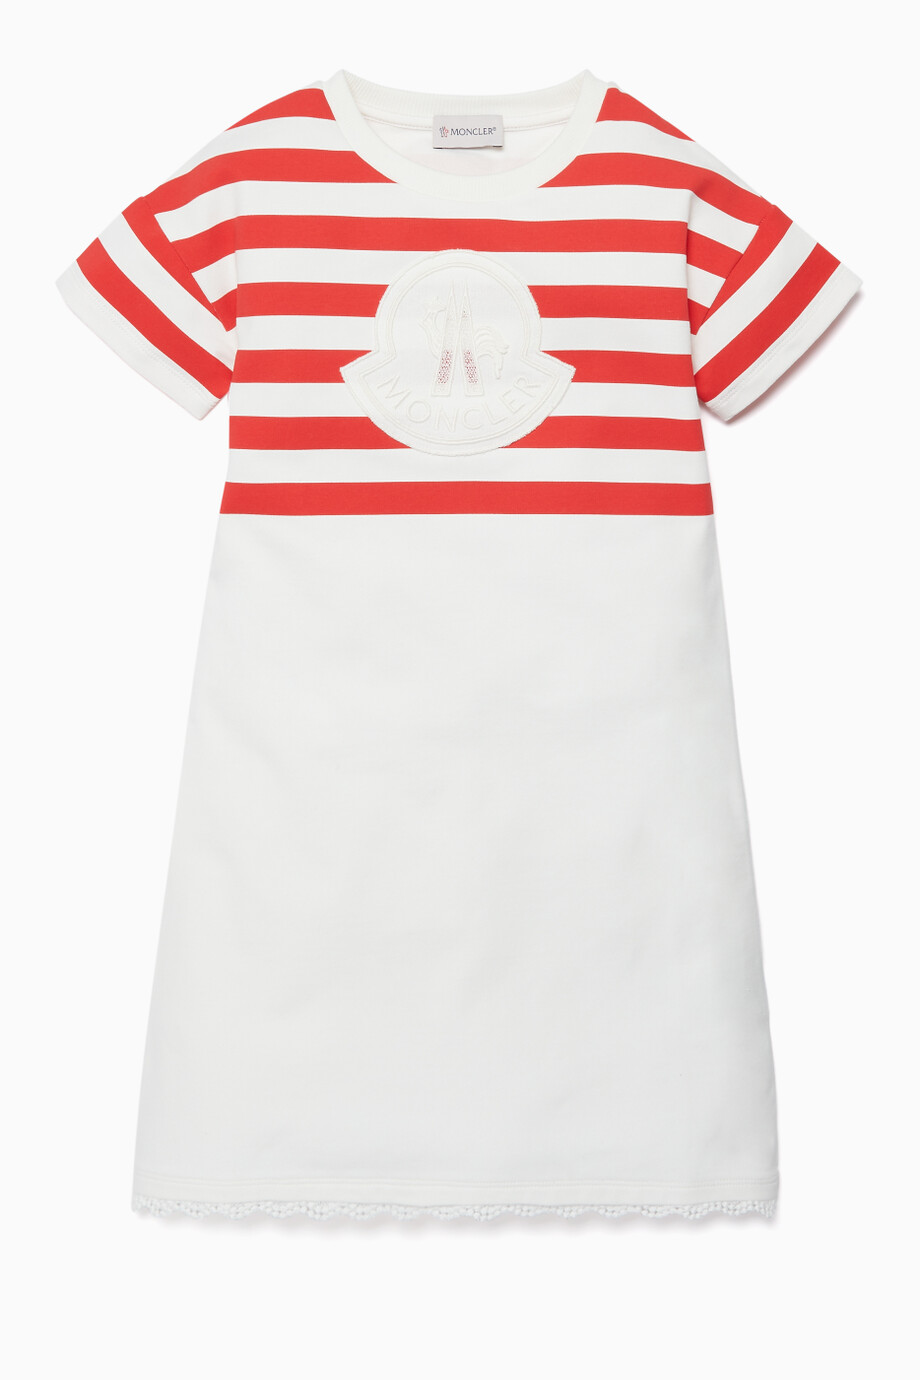 94ddd24f104f Shop Moncler Red Red   White Striped Dress for Kids